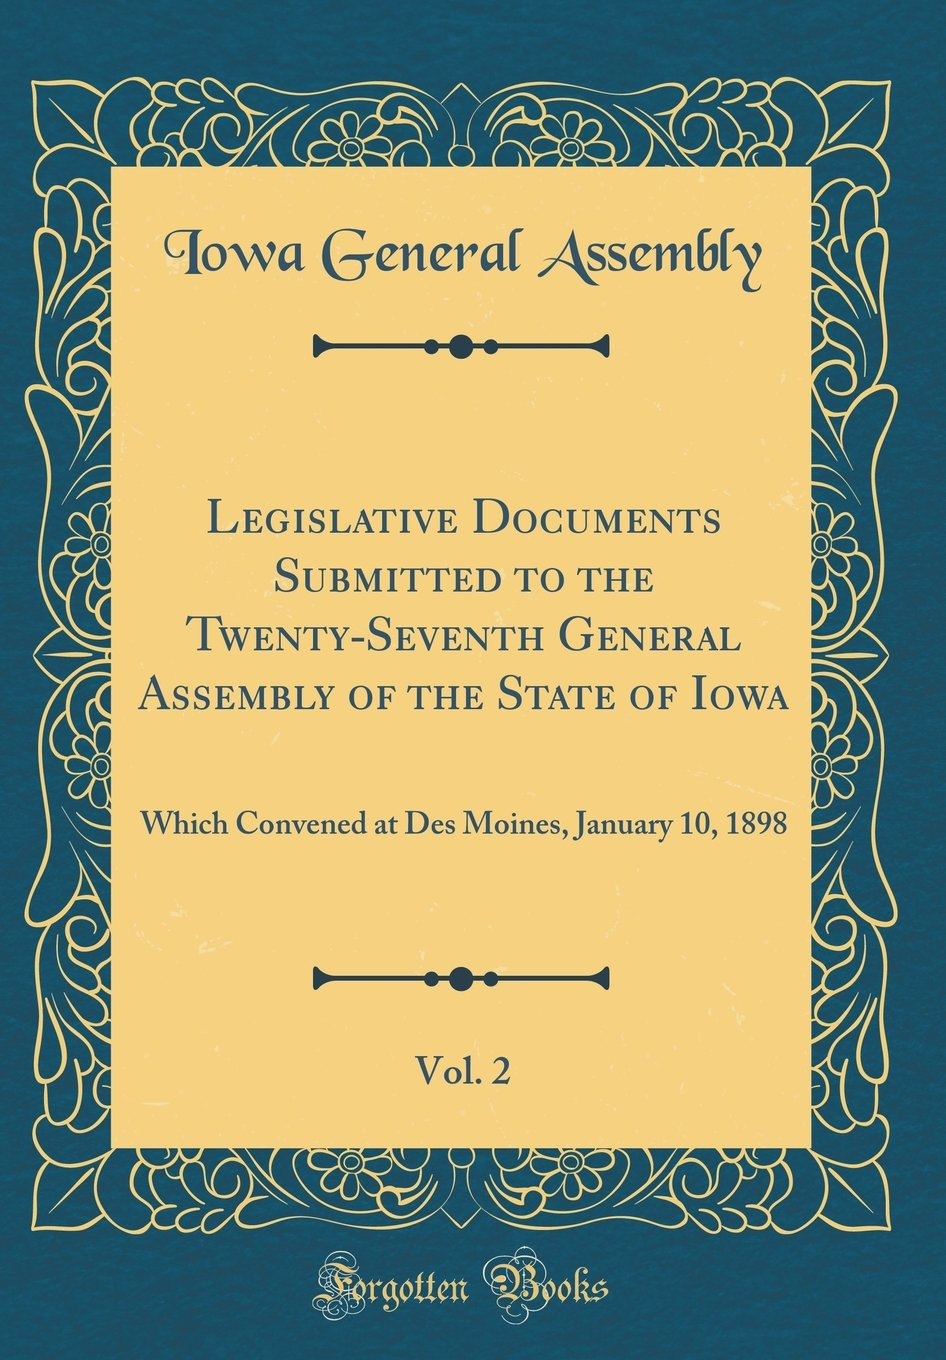 Legislative Documents Submitted to the Twenty-Seventh General Assembly of the State of Iowa, Vol. 2: Which Convened at Des Moines, January 10, 1898 (Classic Reprint) pdf